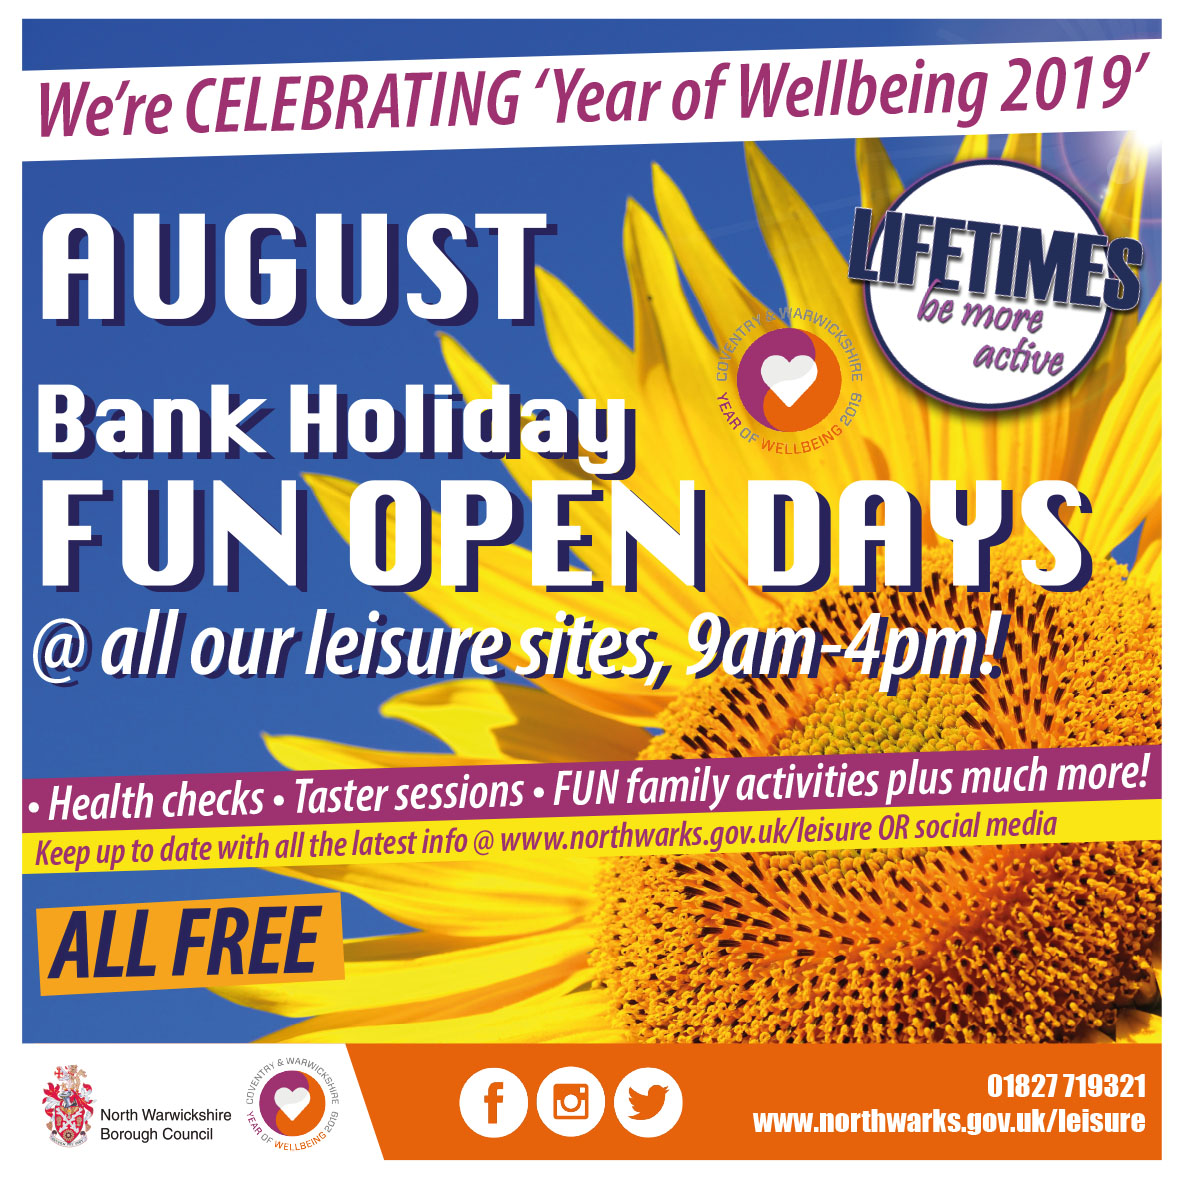 aug bh open day